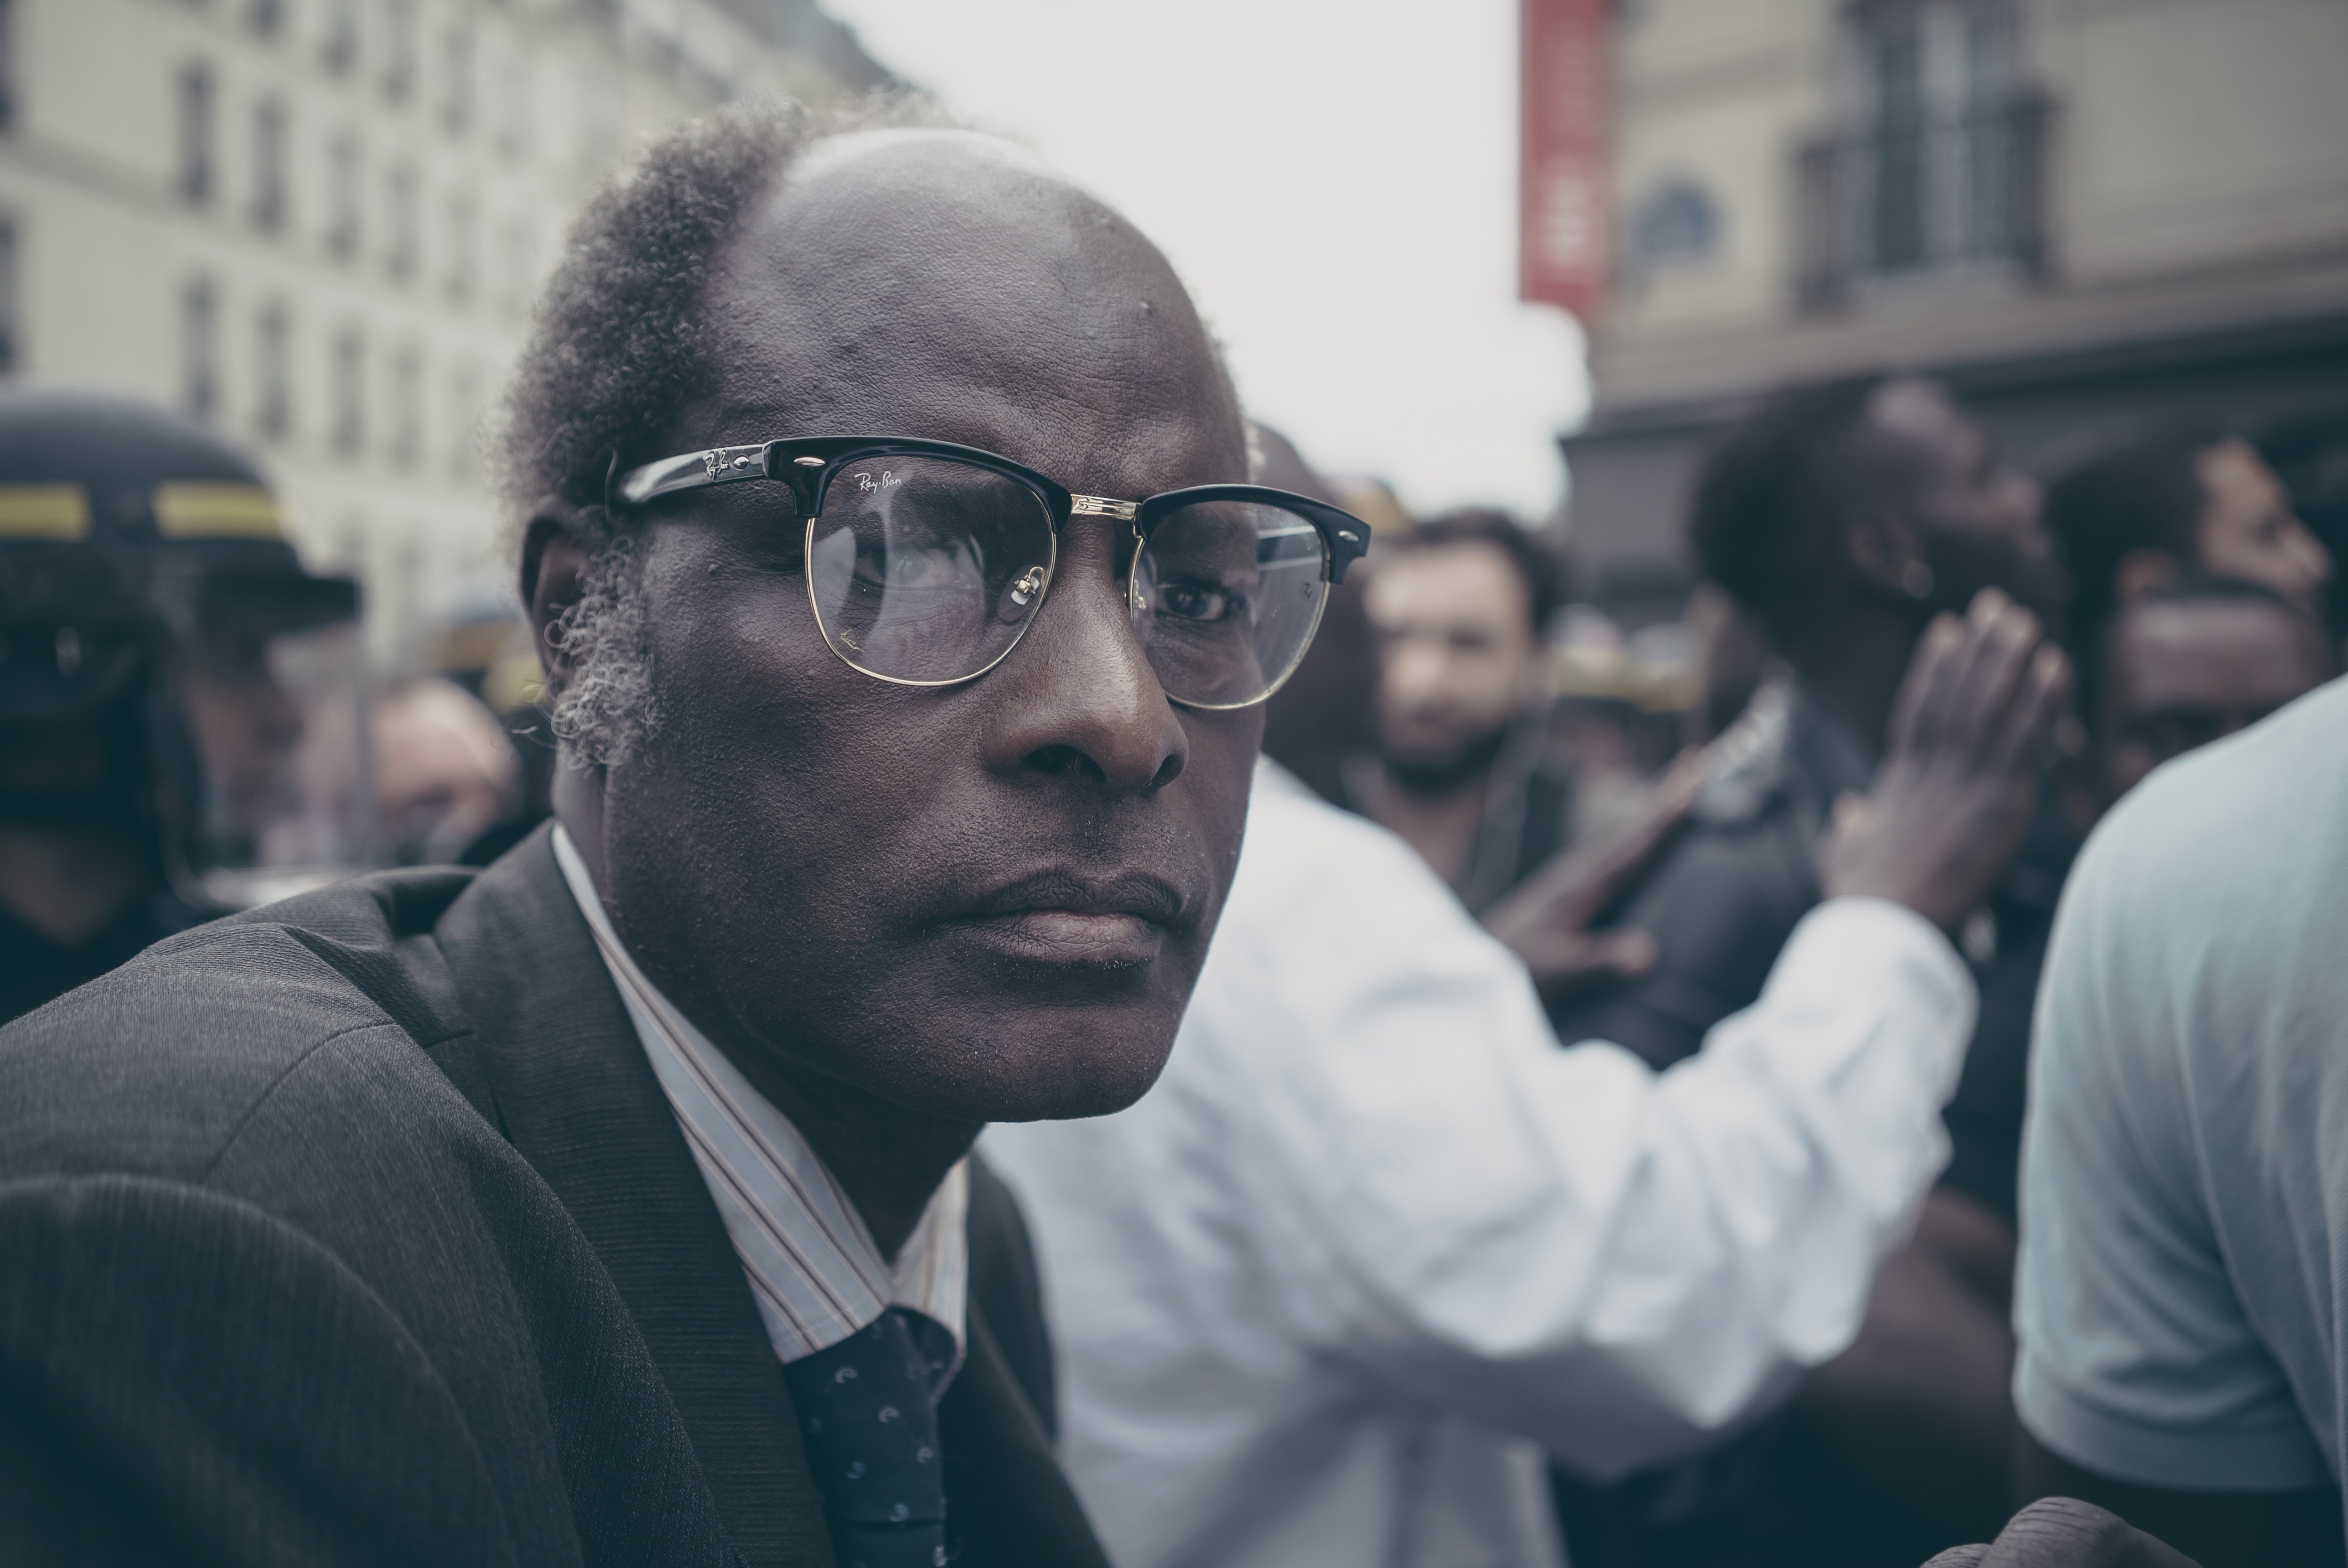 man sitting near crowd in selective focus photography